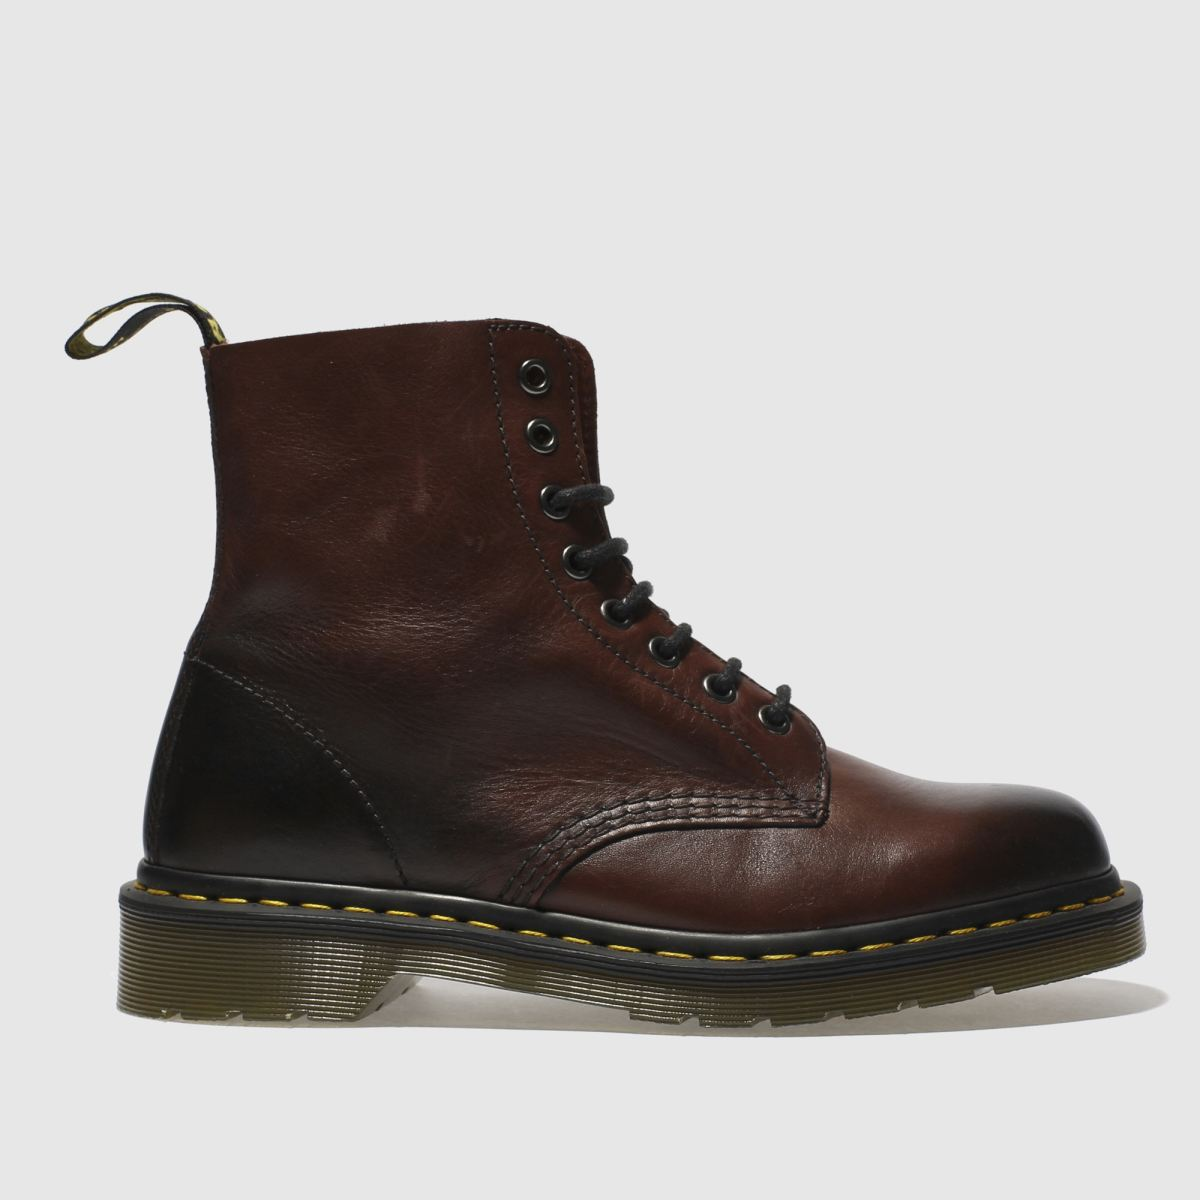 Dr Martens Burgundy 1460 Pascal 8 Eye Boots